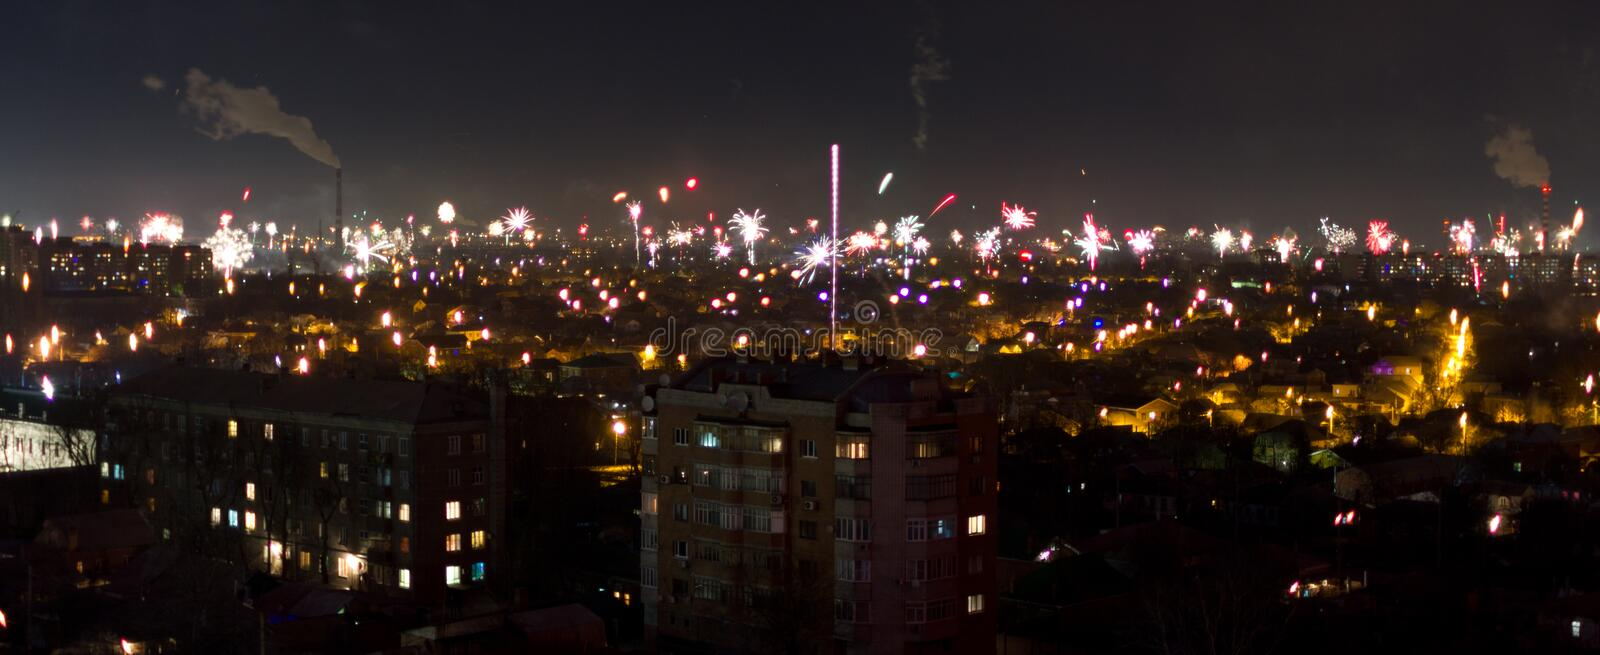 Fireworks over a city stock images